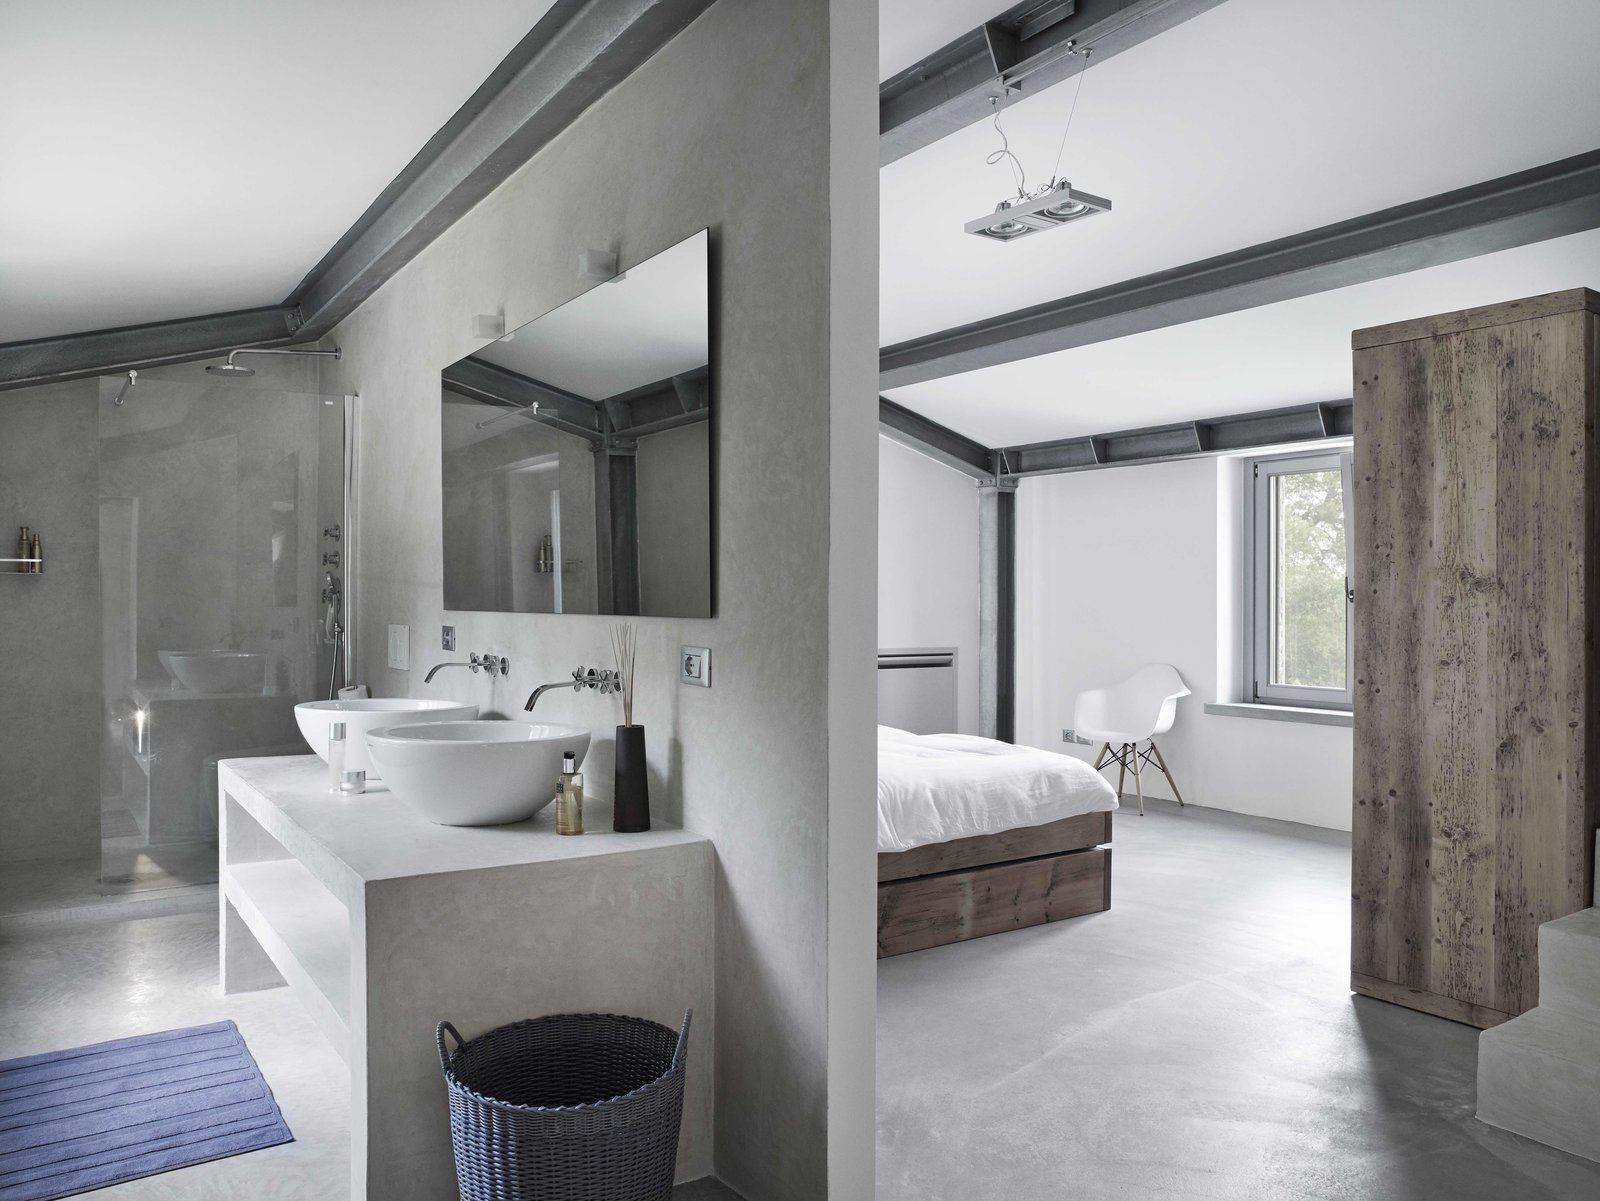 Bath Room, Concrete Counter, Concrete Floor, Vessel Sink, Enclosed Shower, Concrete Wall, Corner Shower, Wall Lighting, and Pendant Lighting  Photo 8 of 11 in Stay in a Modern, Industrial Home That's Hidden Inside a Traditional Tuscan Villa